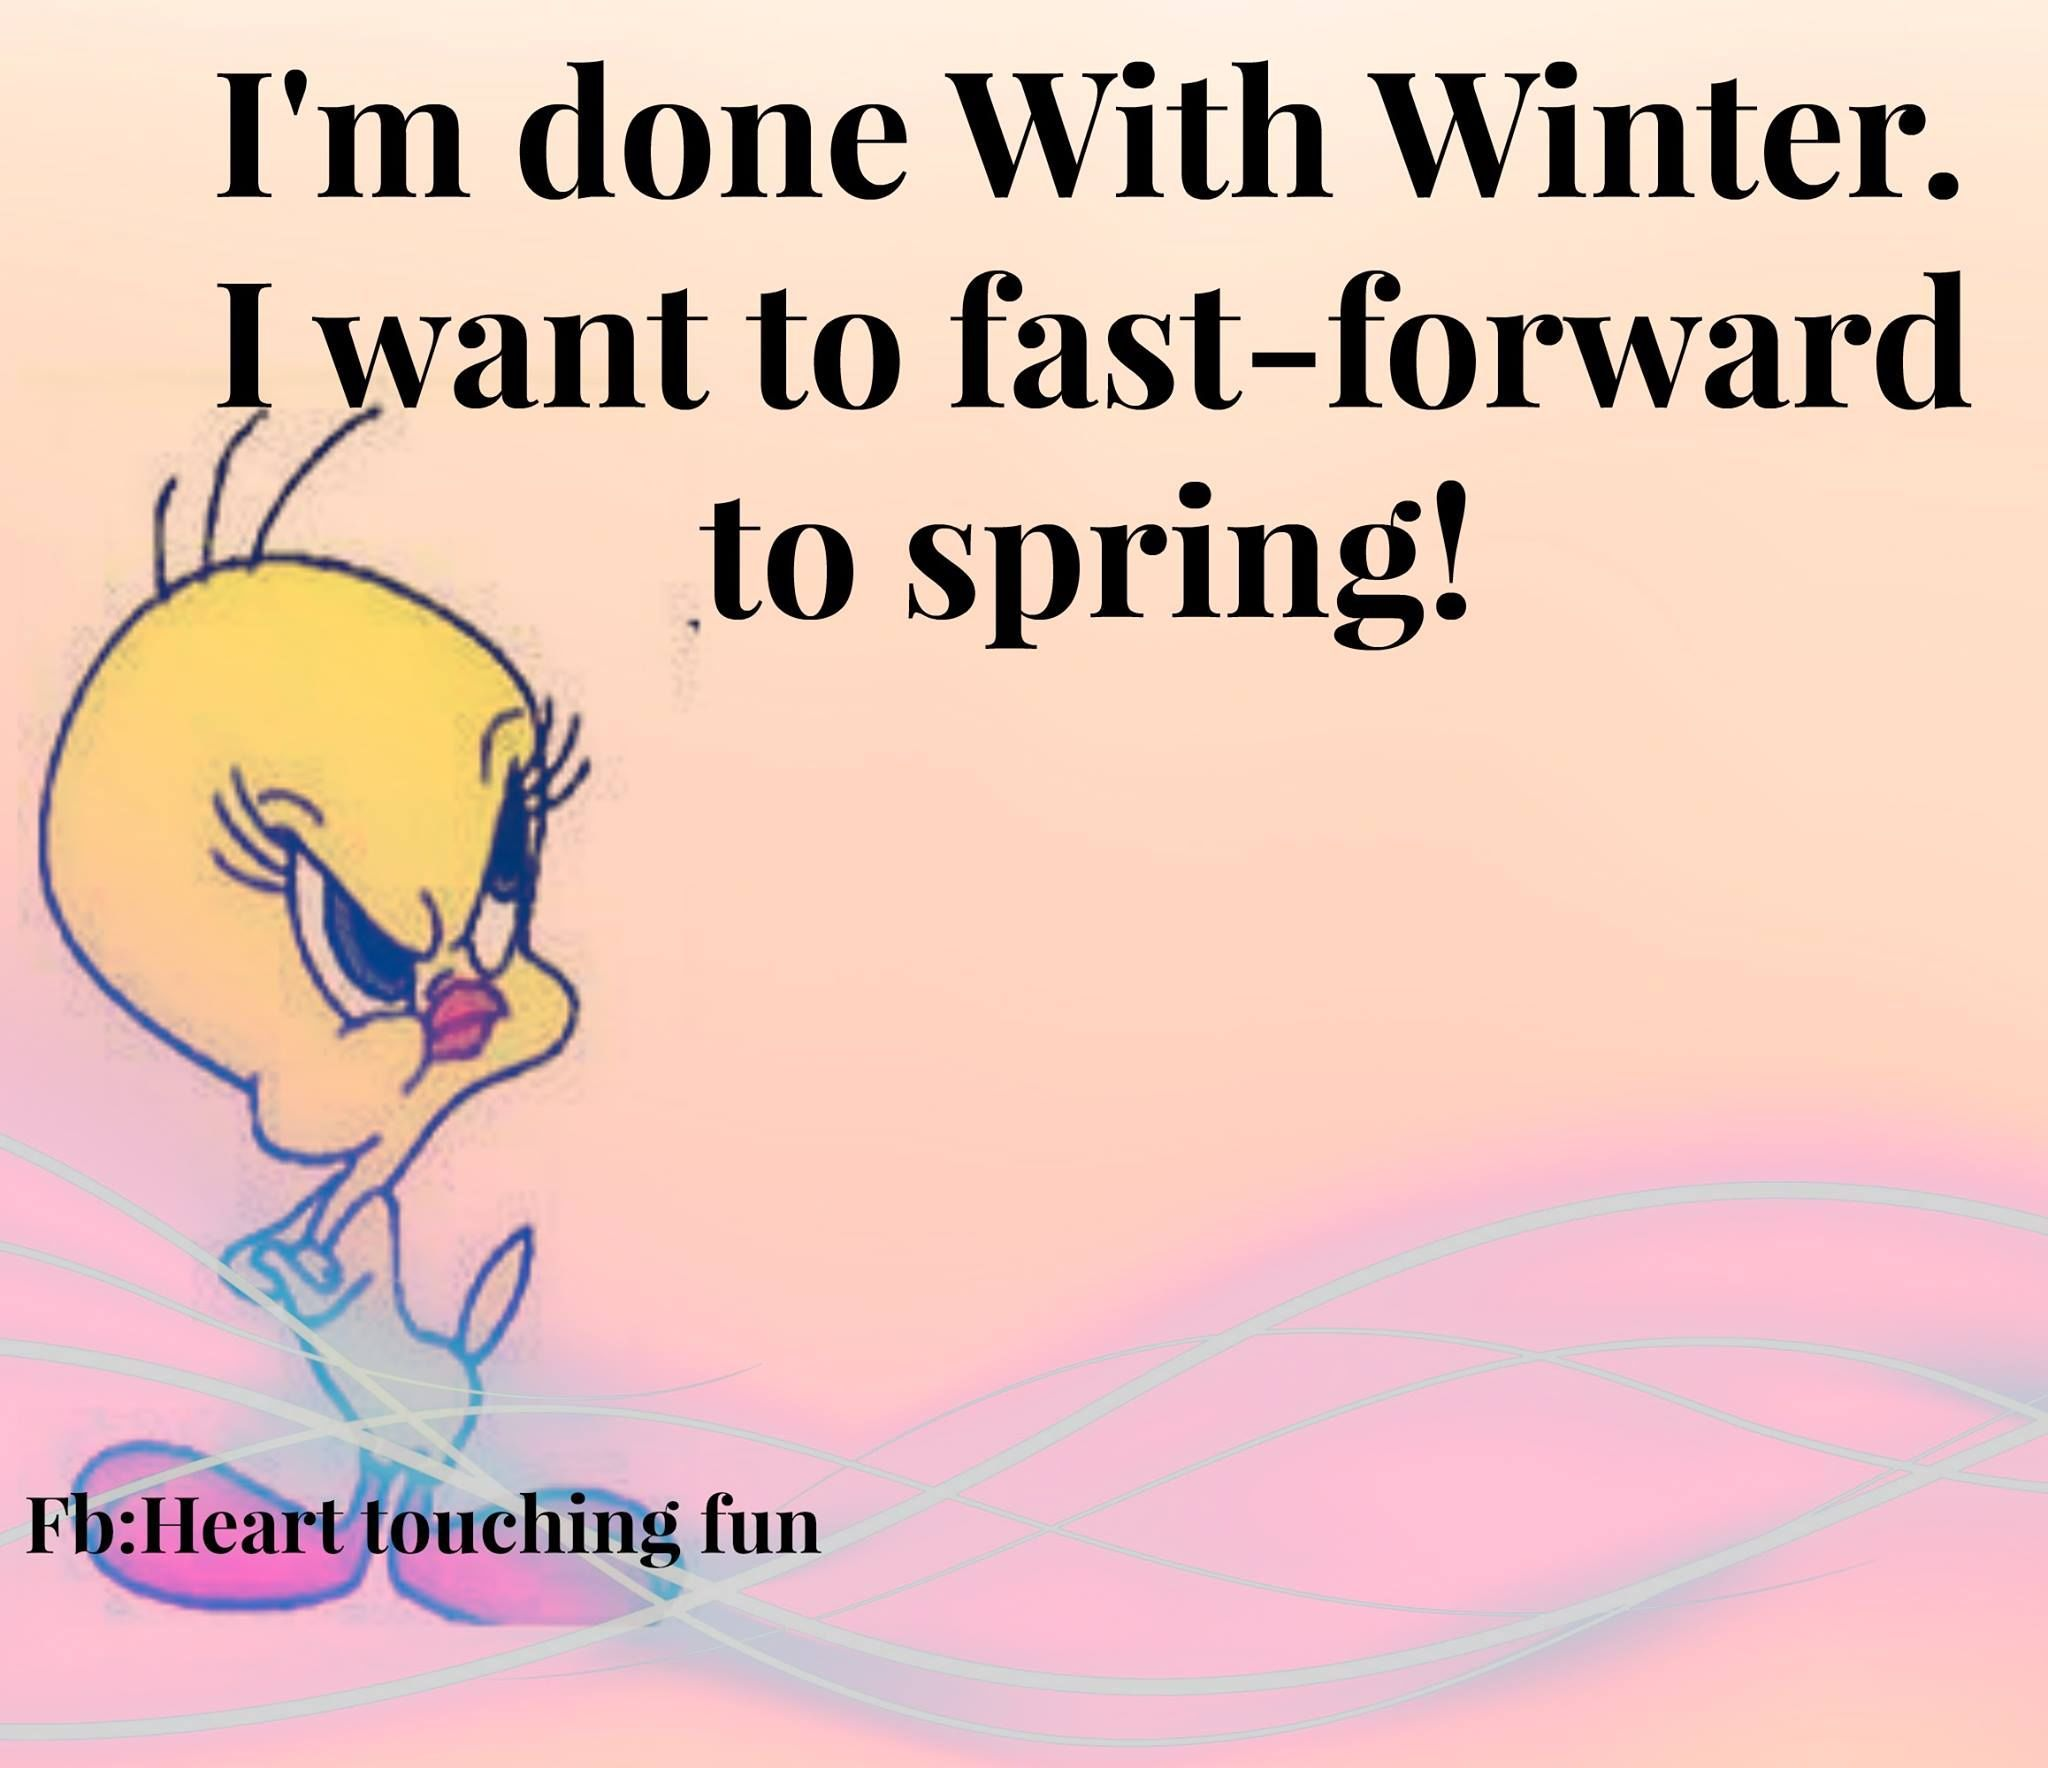 I Am Done With Winter Quotes Quote Winter Cold Funny Quotes Tweety Bird  Humor Winter Quotes